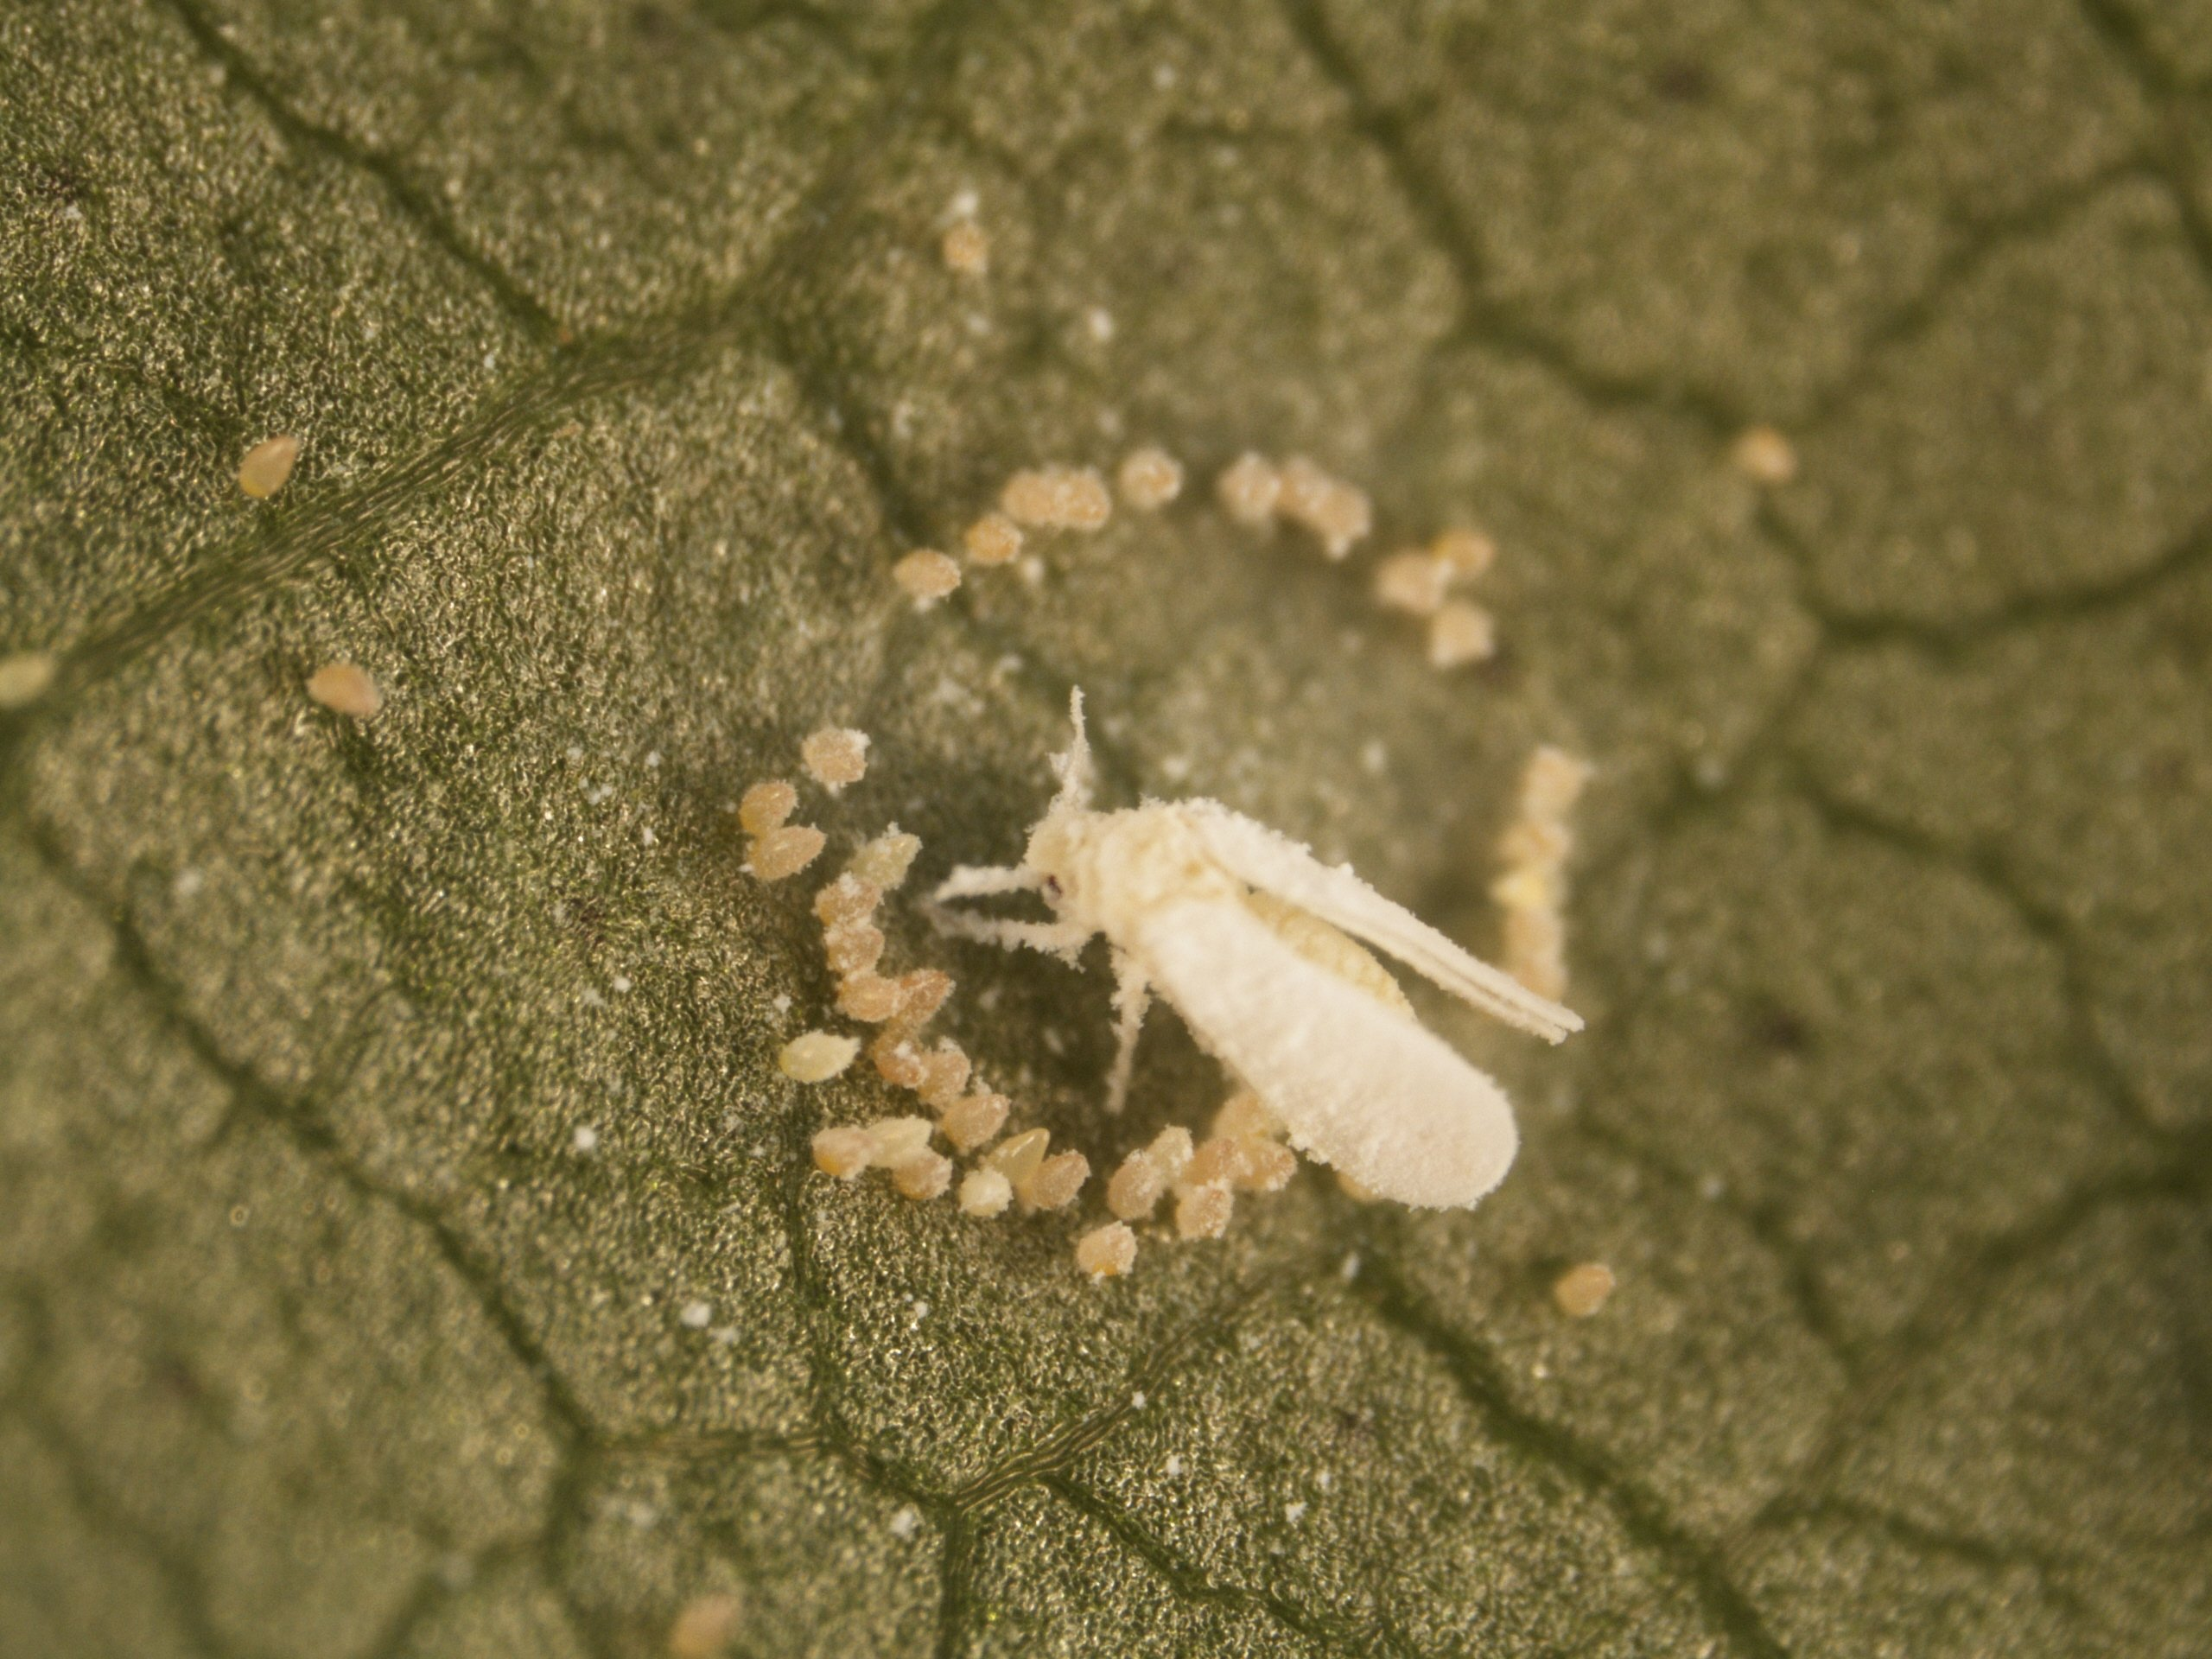 Silverleaf whitefly adult with eggs.